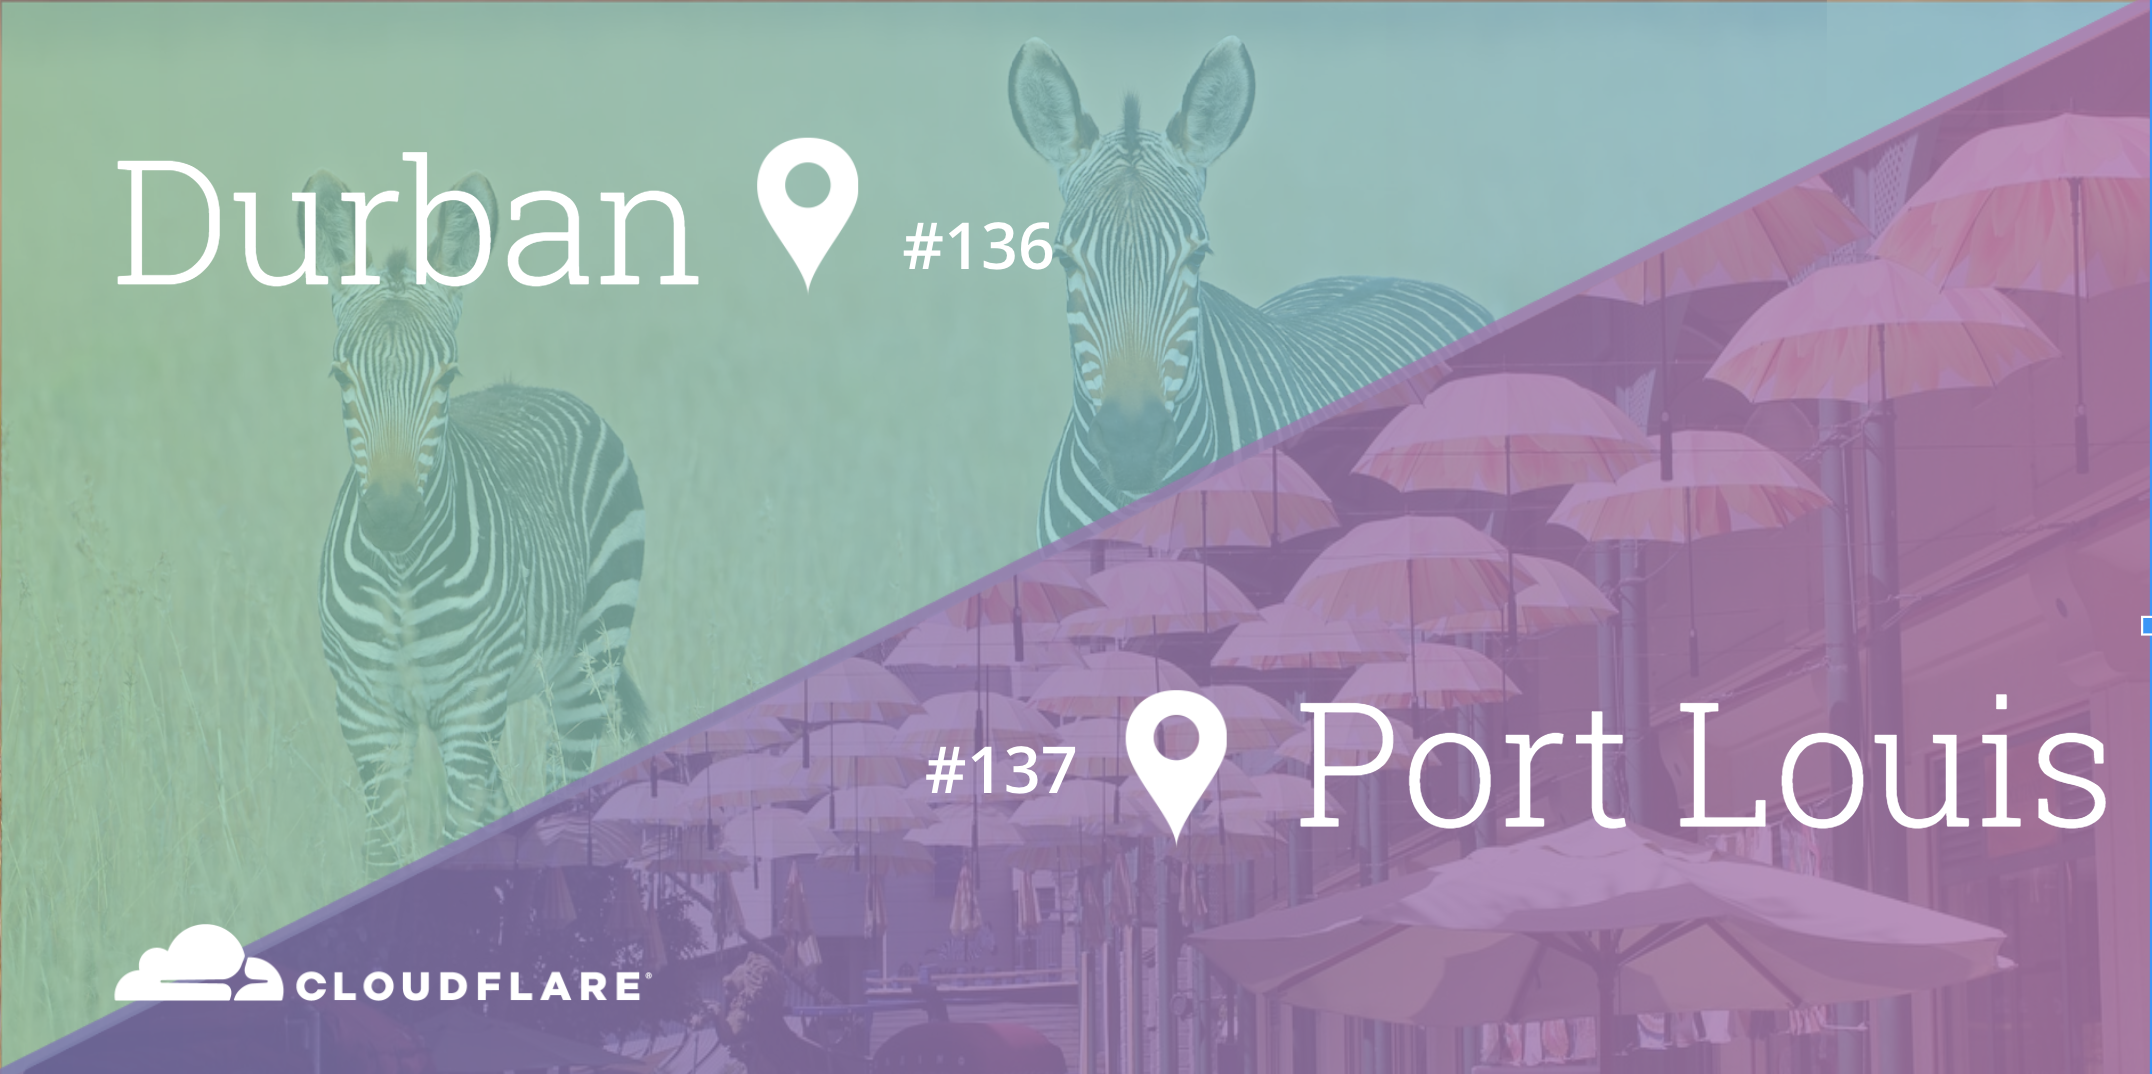 Cloudflare Global Network Spans 137 Cities: Launching Durban and Port Louis Data Centers